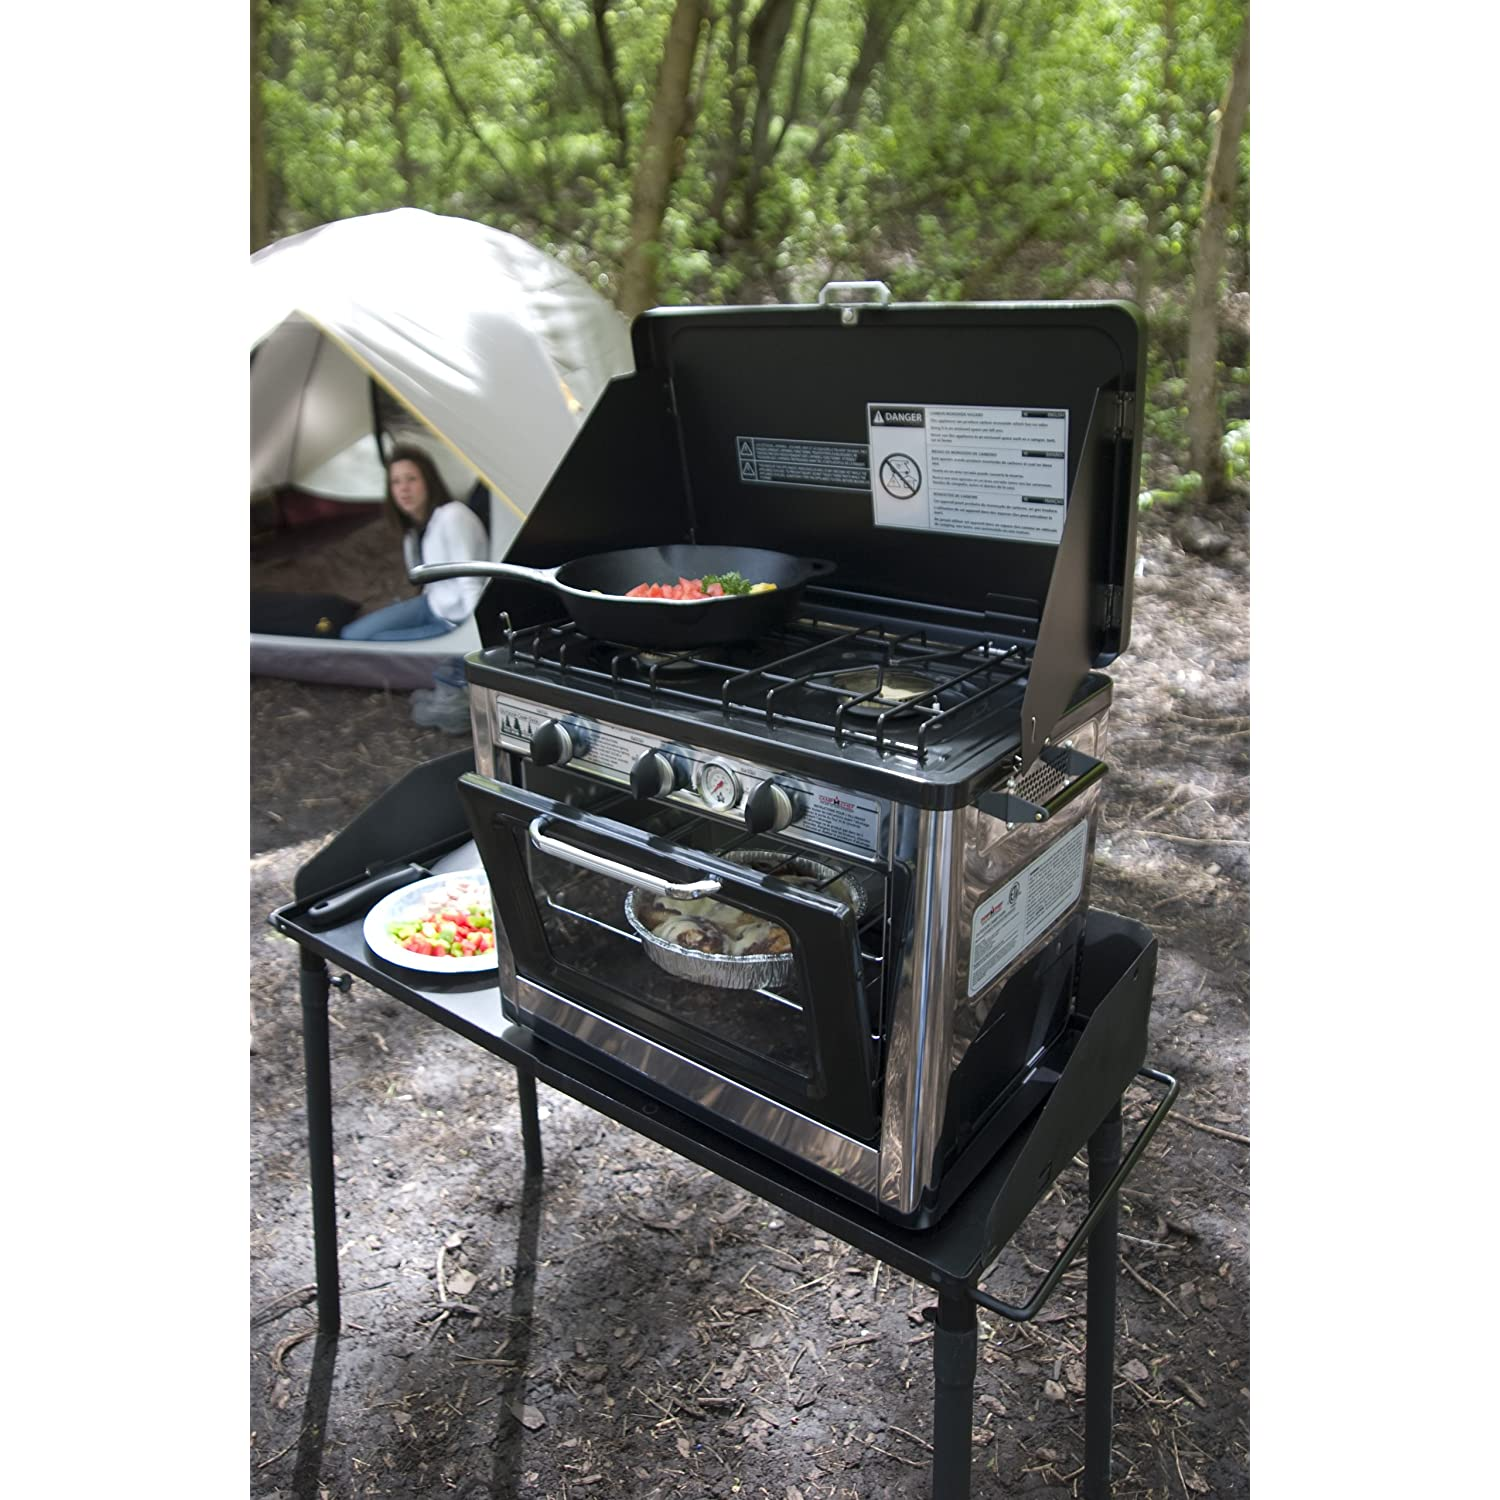 Camp Chef Outdoor Camp Oven 2 Burner is being used at a camping cook site